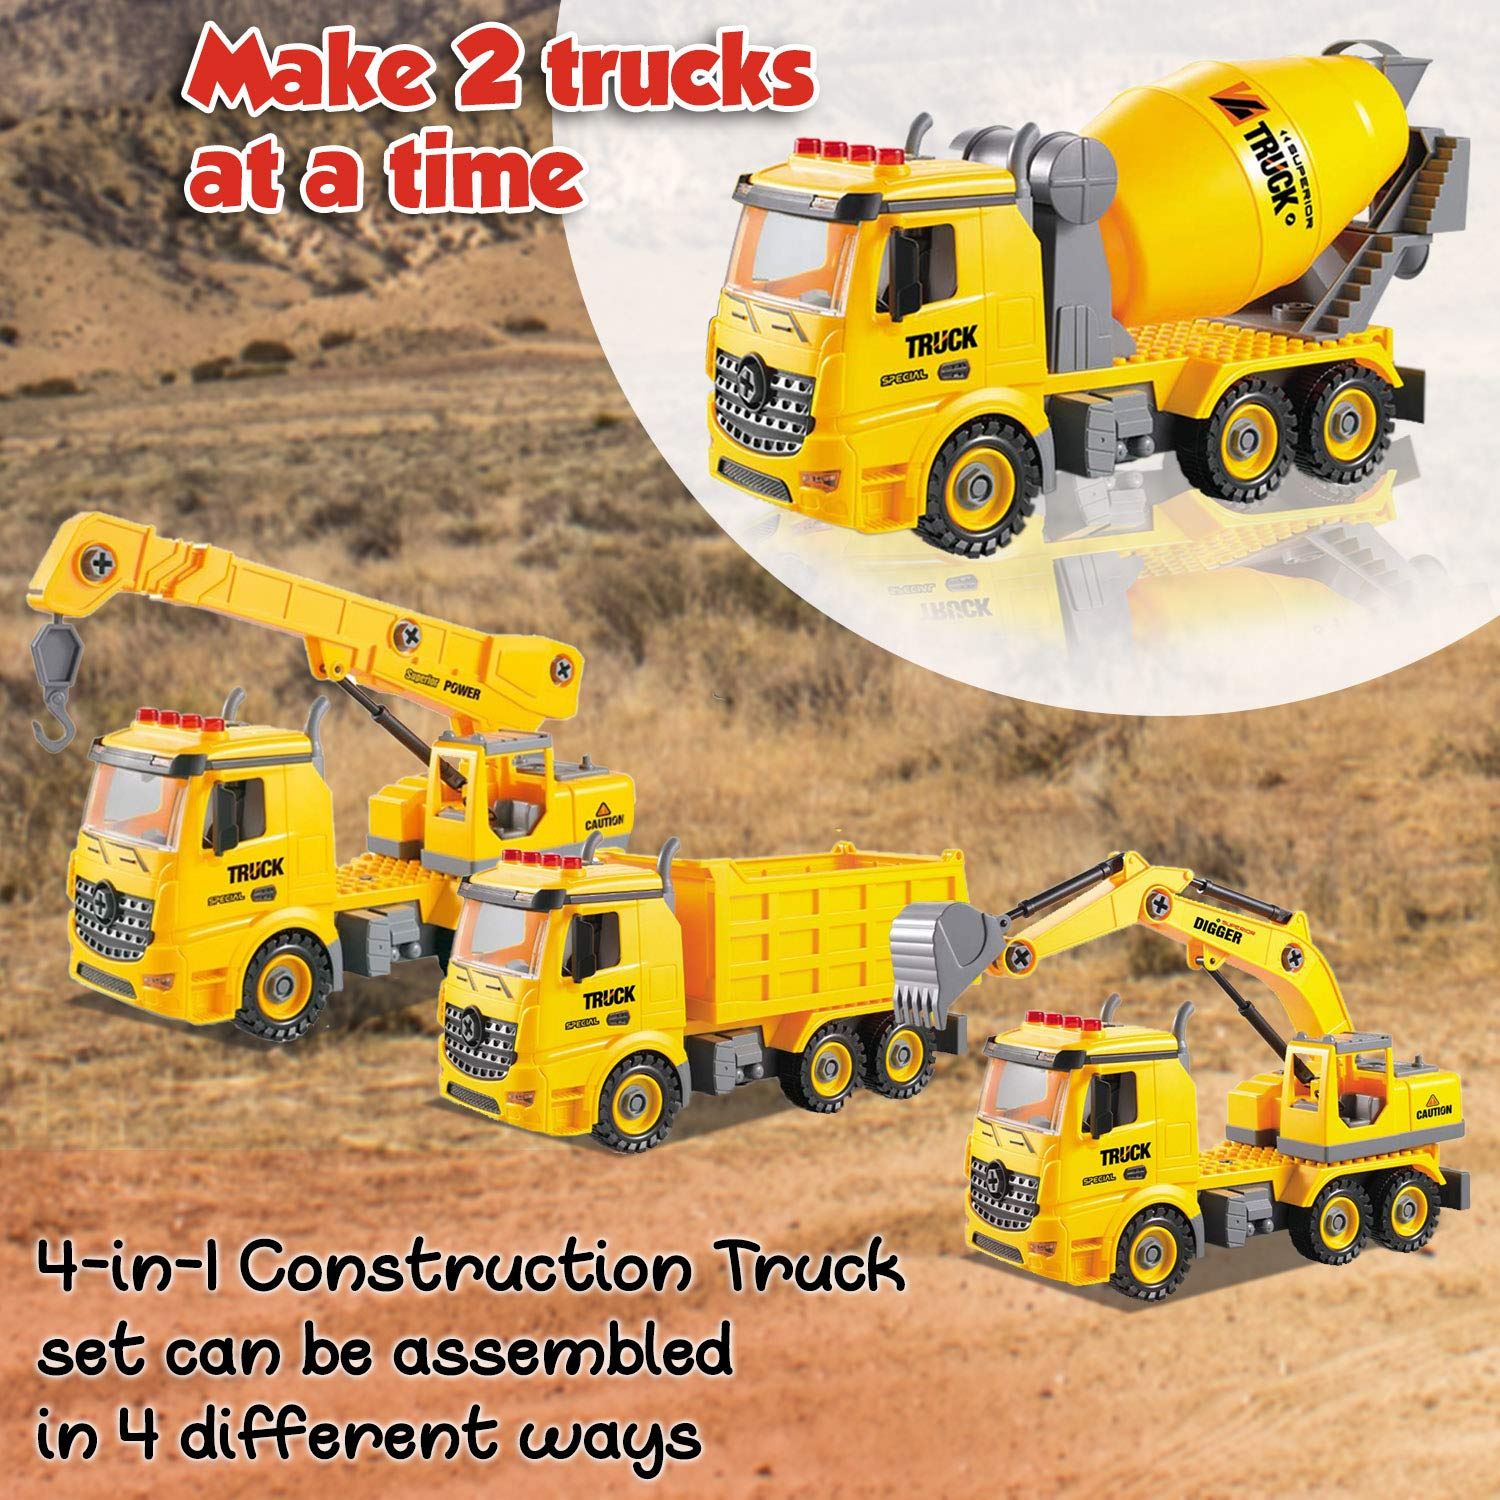 4-in-2 Take Apart Construction Truck Toy – Builds Dump Truck, Cement Mixer, Excavator & Crane – STEM Learning Toy & DIY Building Play Set for Kids Ages 6 In Up